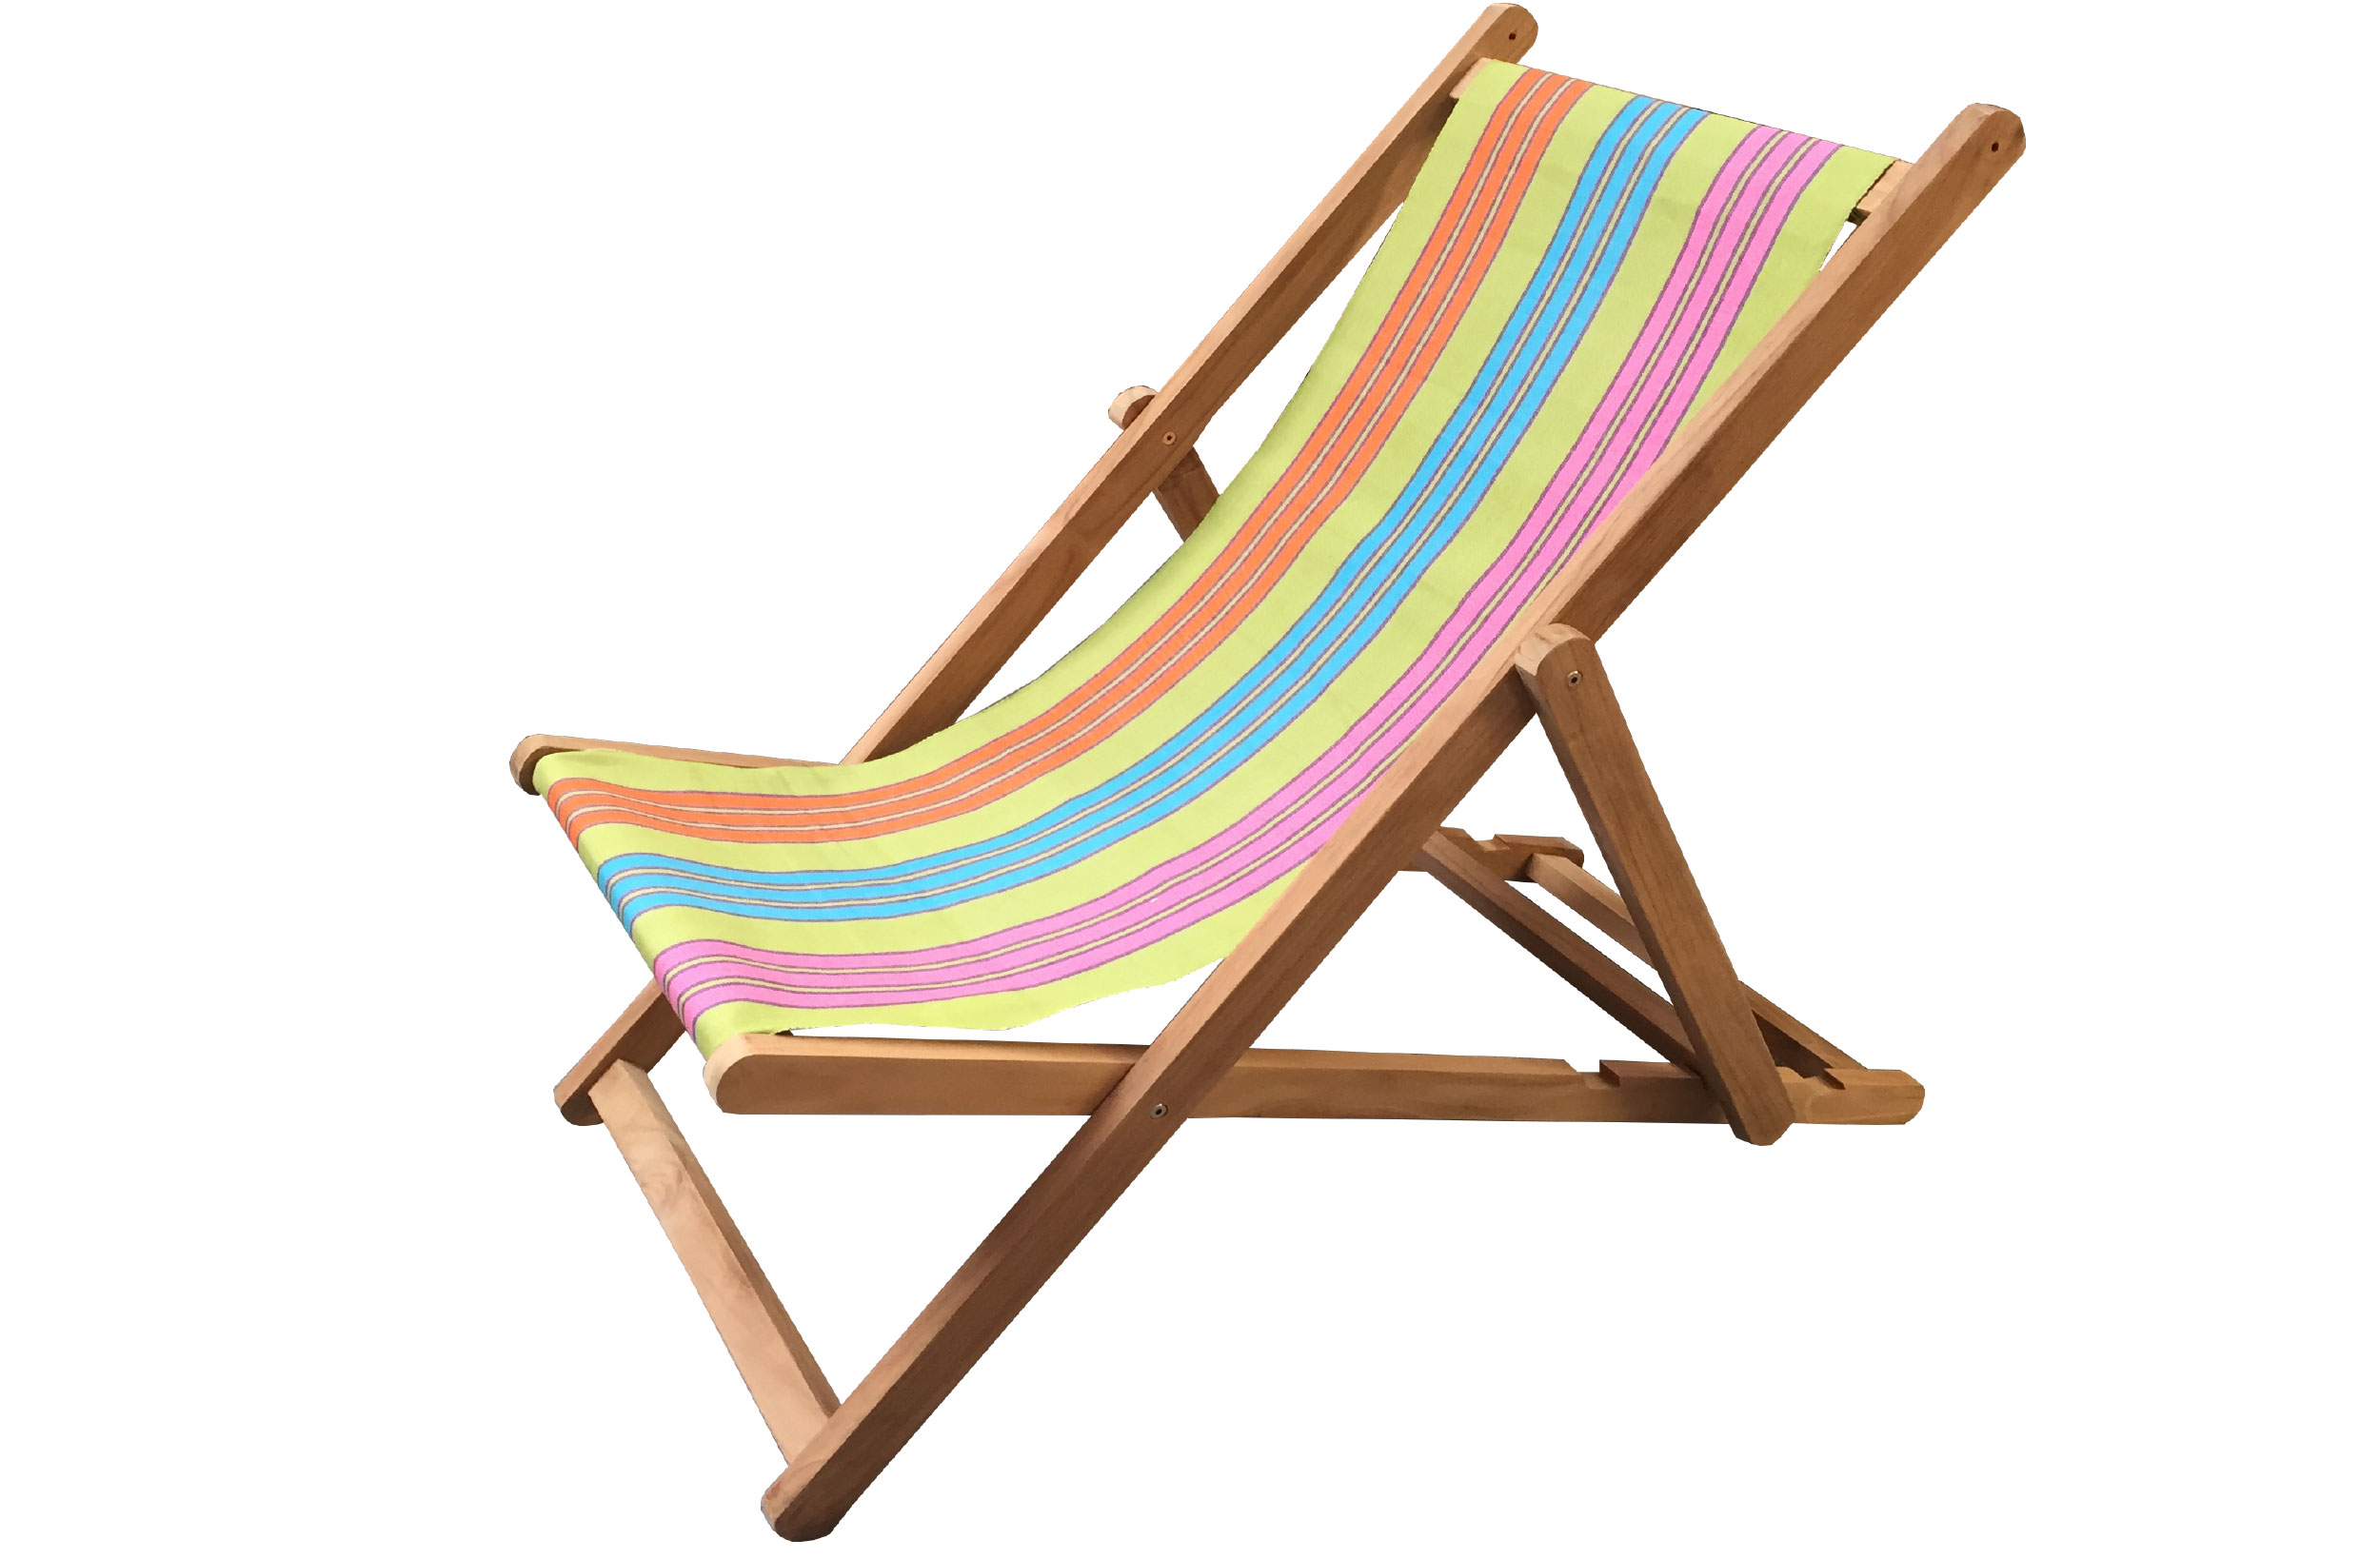 green, turquoise, pink - Deckchairs | Buy Folding Wooden Deck Chairs